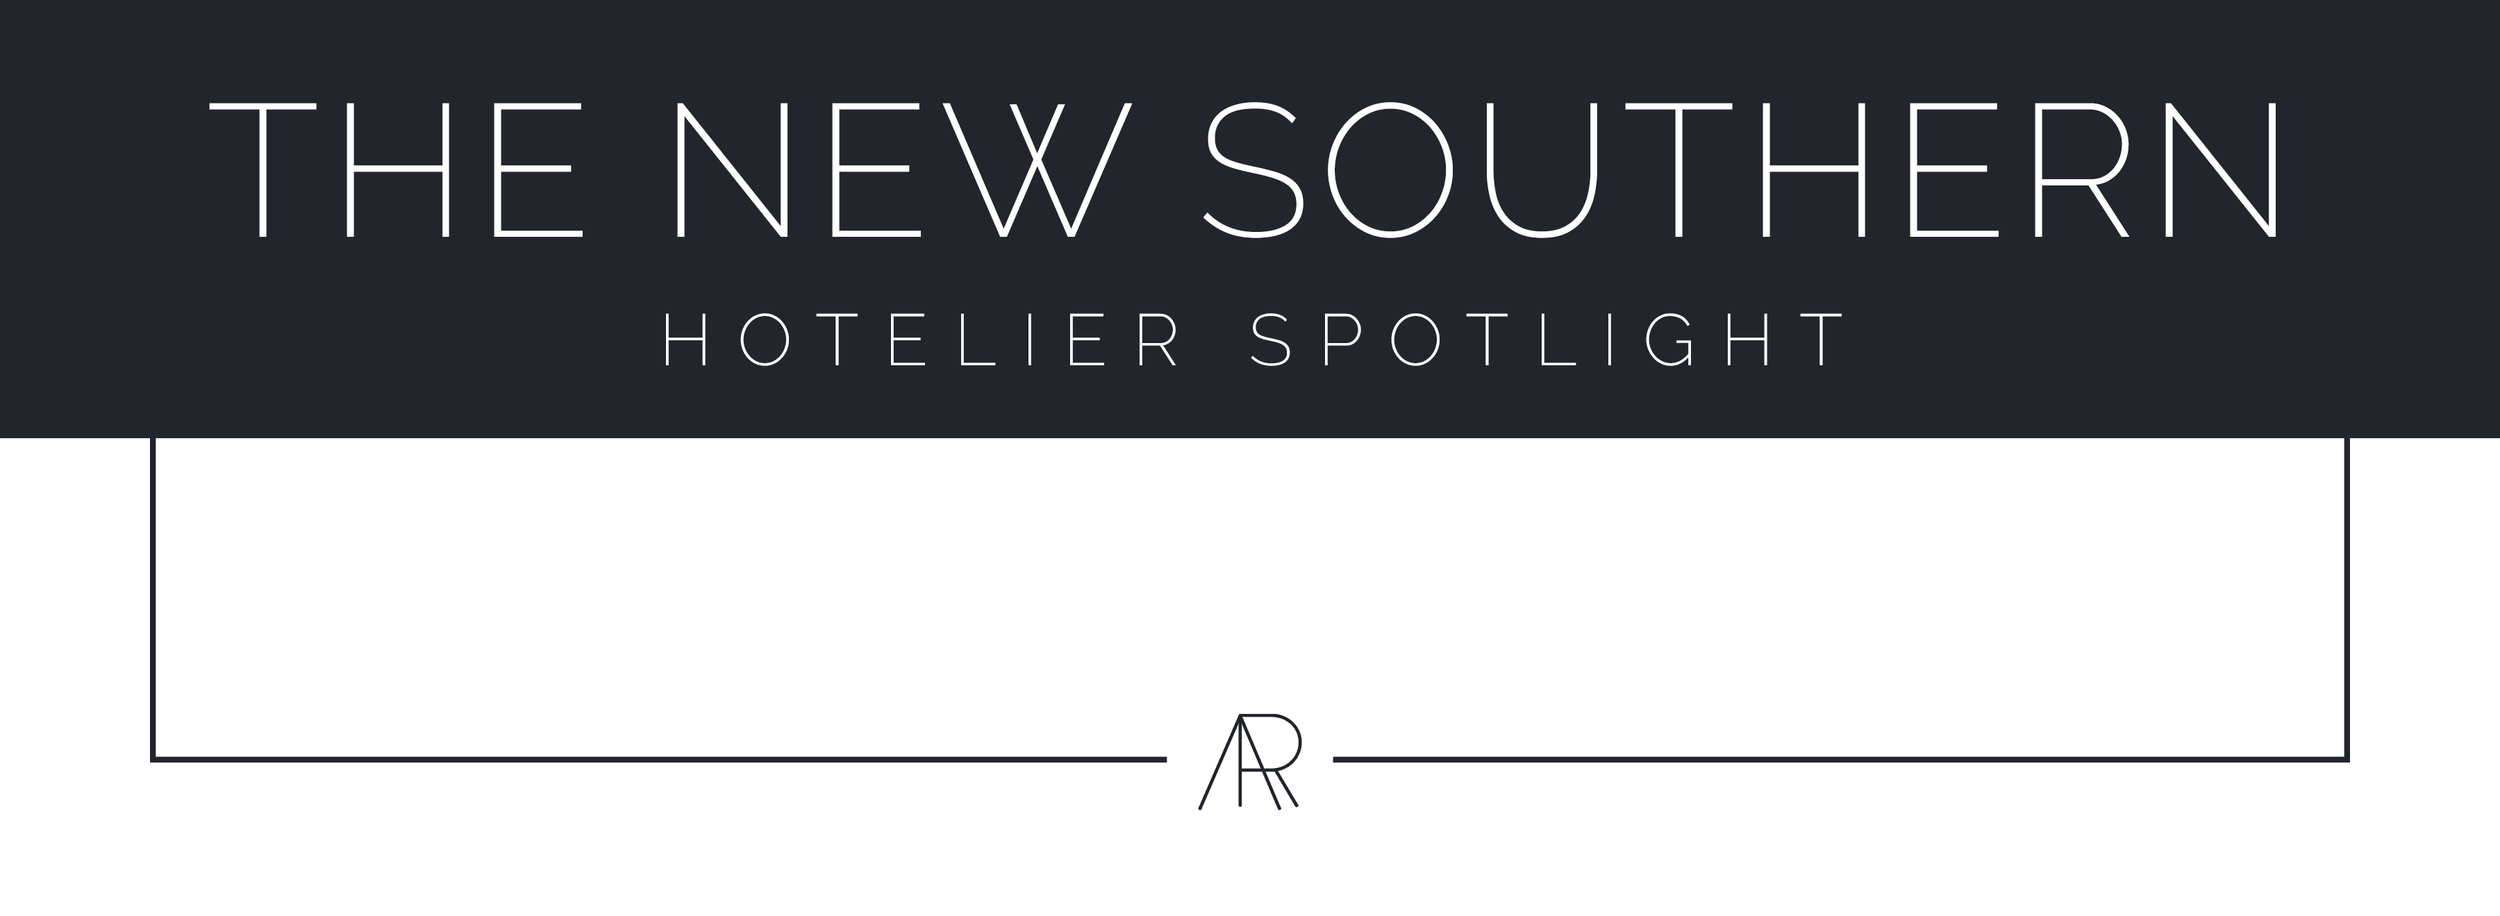 Alyssa Rosenheck's The New Southern Hotelier Spotlight with Seija Ojanpera Chattanooga, TN